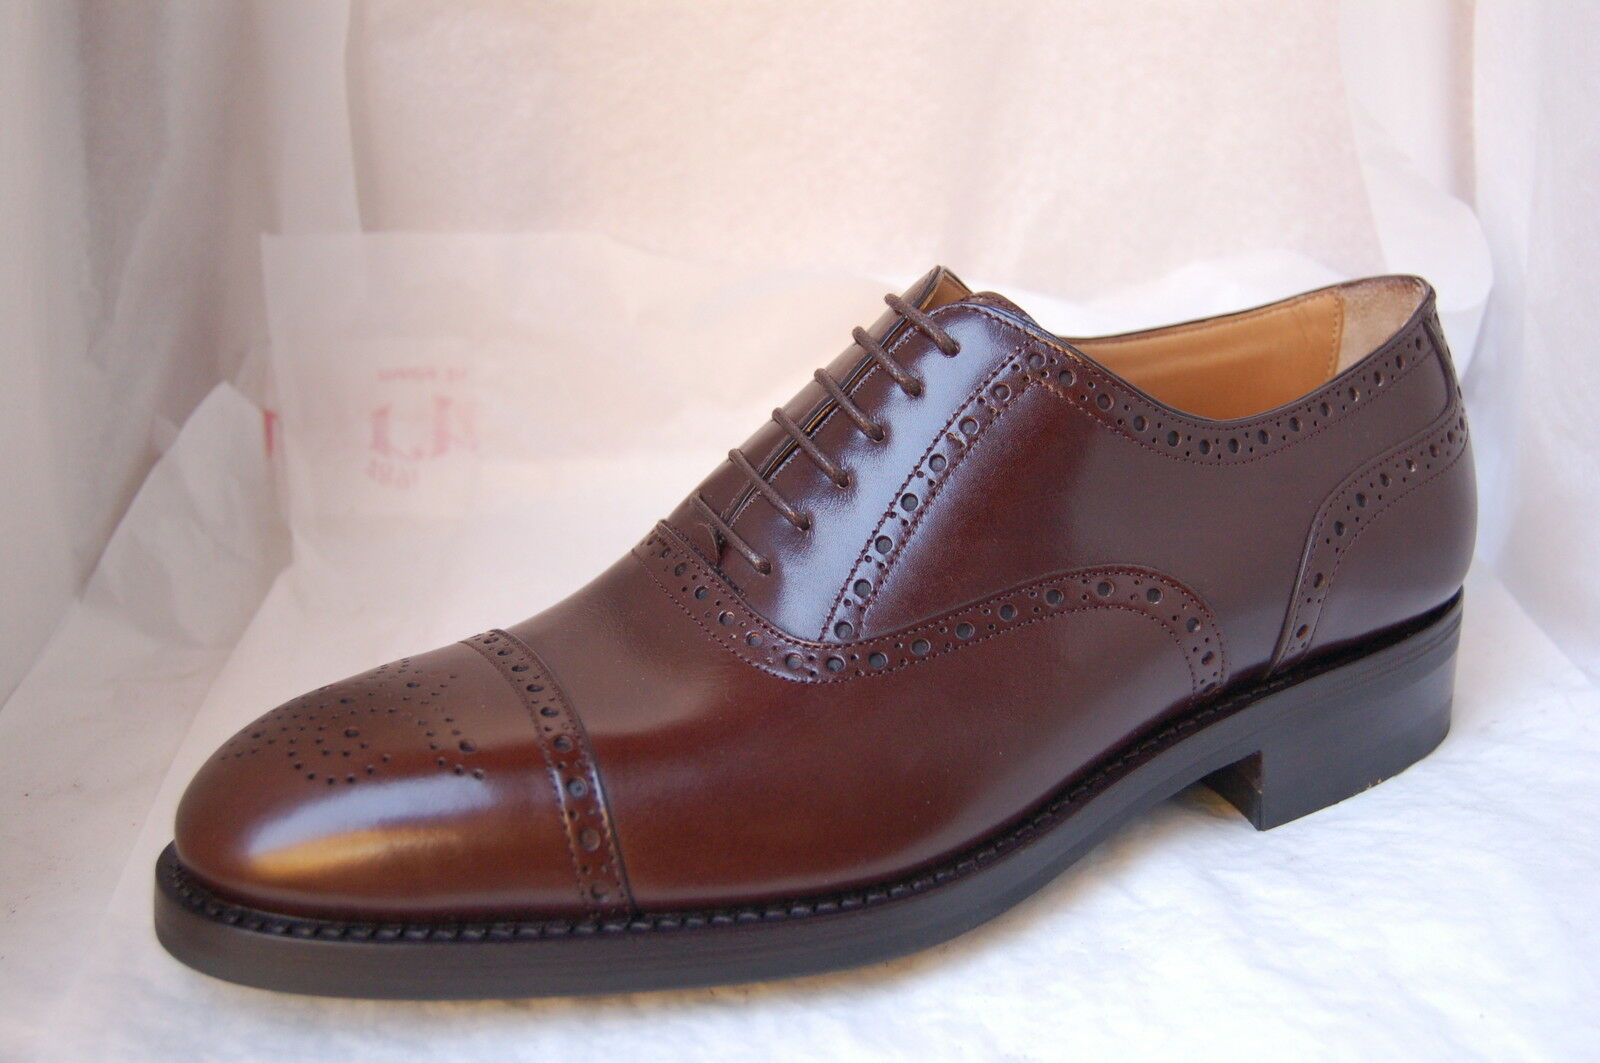 MAN SHOE - 7 eu - OXFORD PERFSCAPTOE + 5048 MEDALLION - CALF TDM 5048 + - RUBBER SOLE 7ff4b4